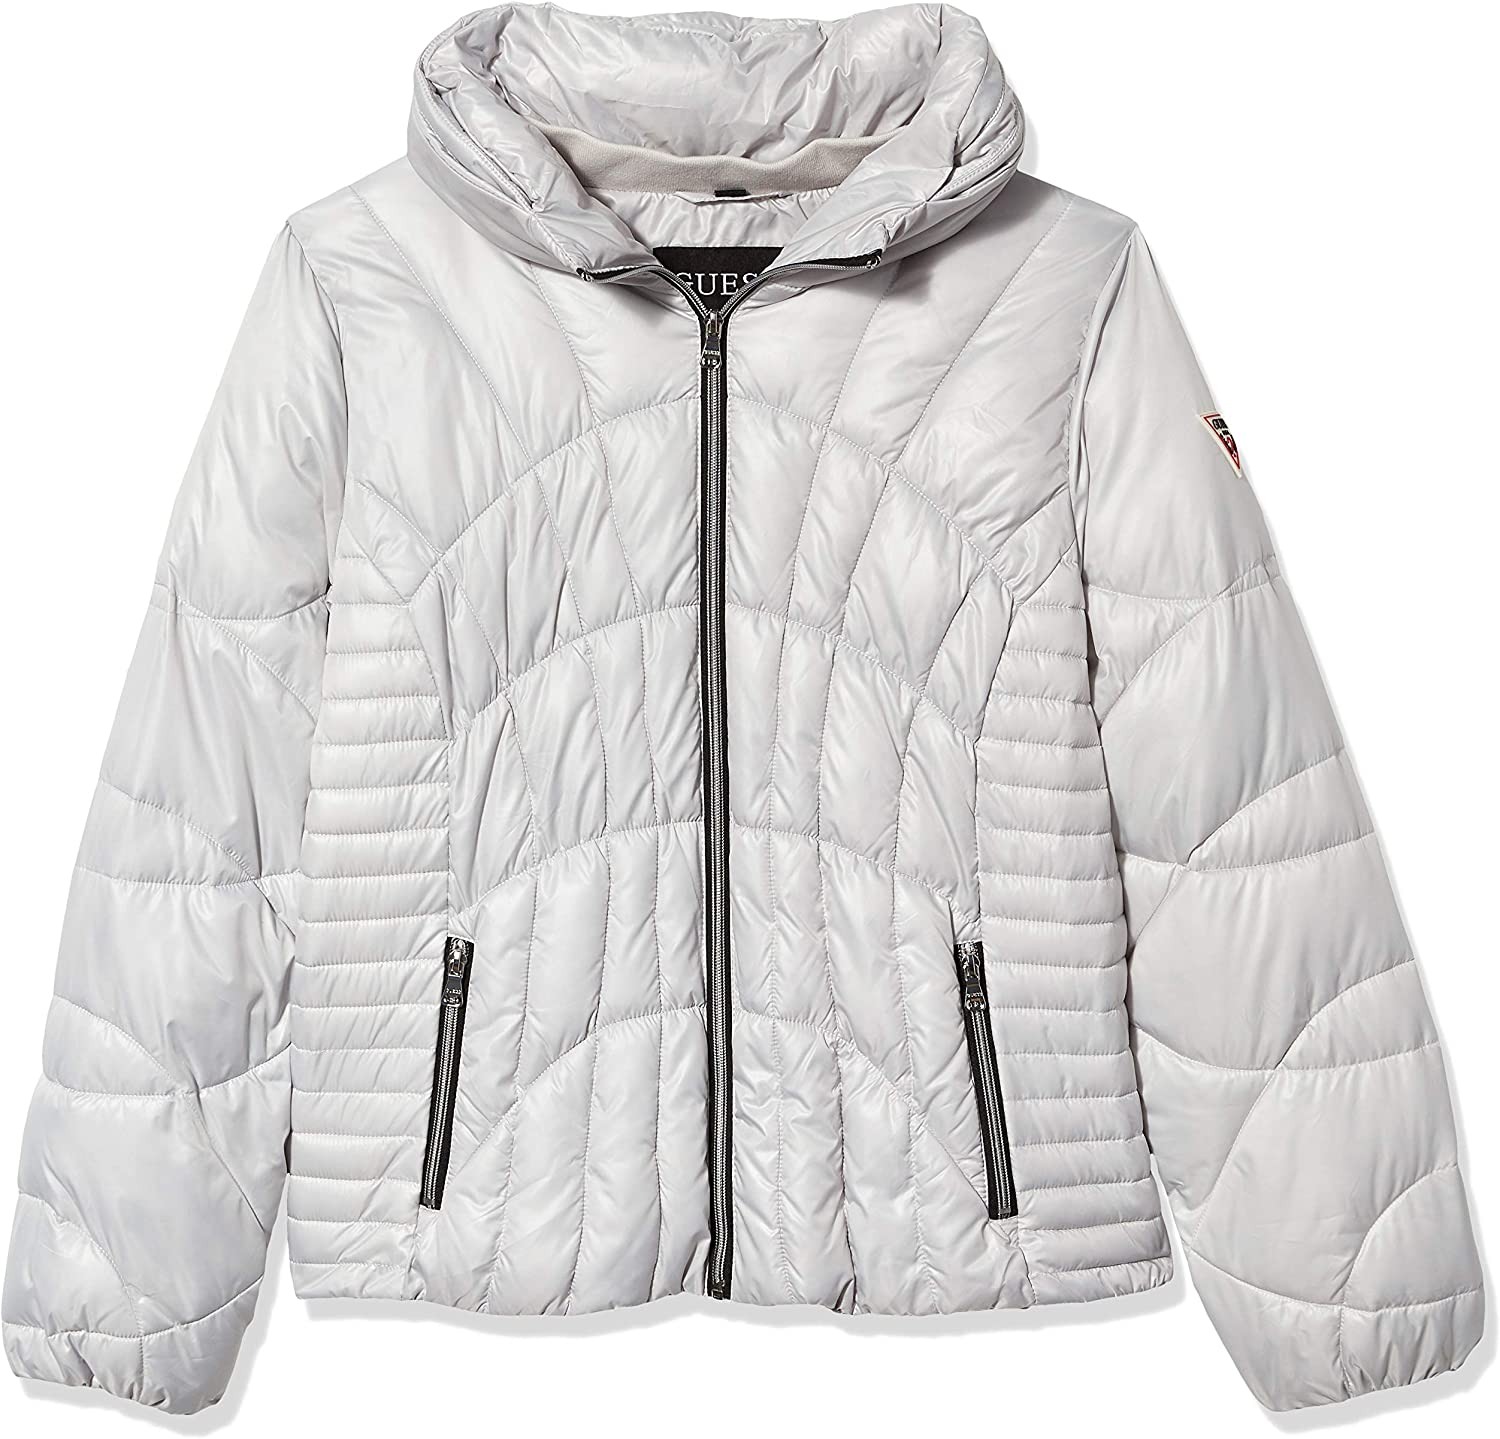 GUESS Women's Quilted Puffer Jacket